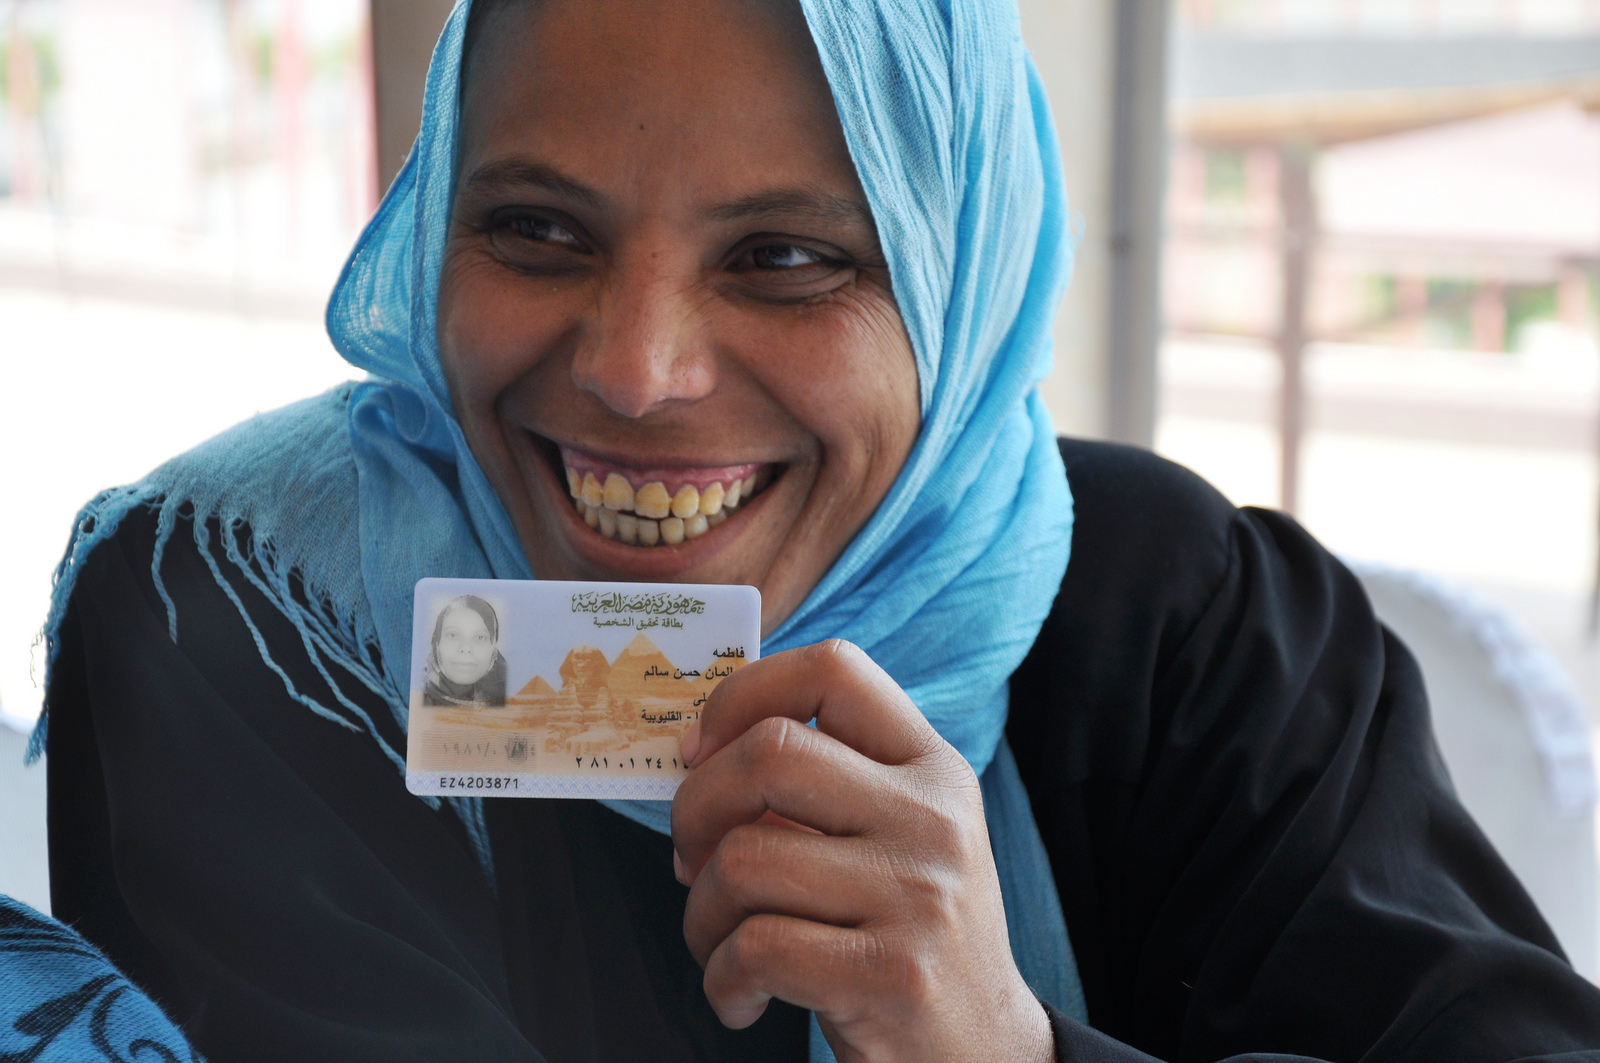 Having an official identification card is key to the rule of law. In this photo, an Egyptian woman holds her card.